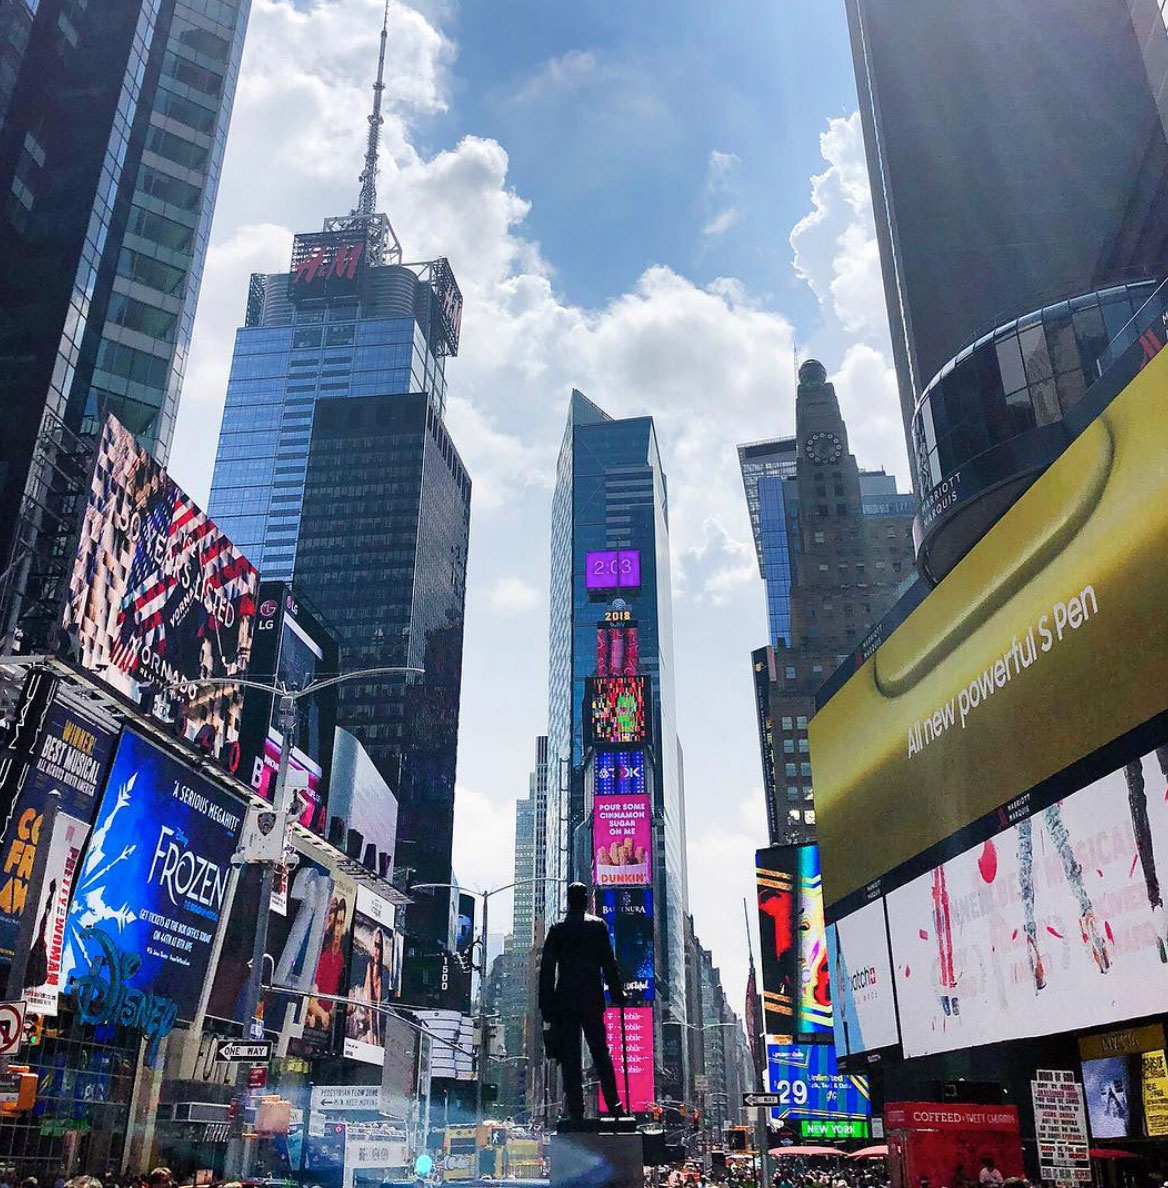 Time Square in New York